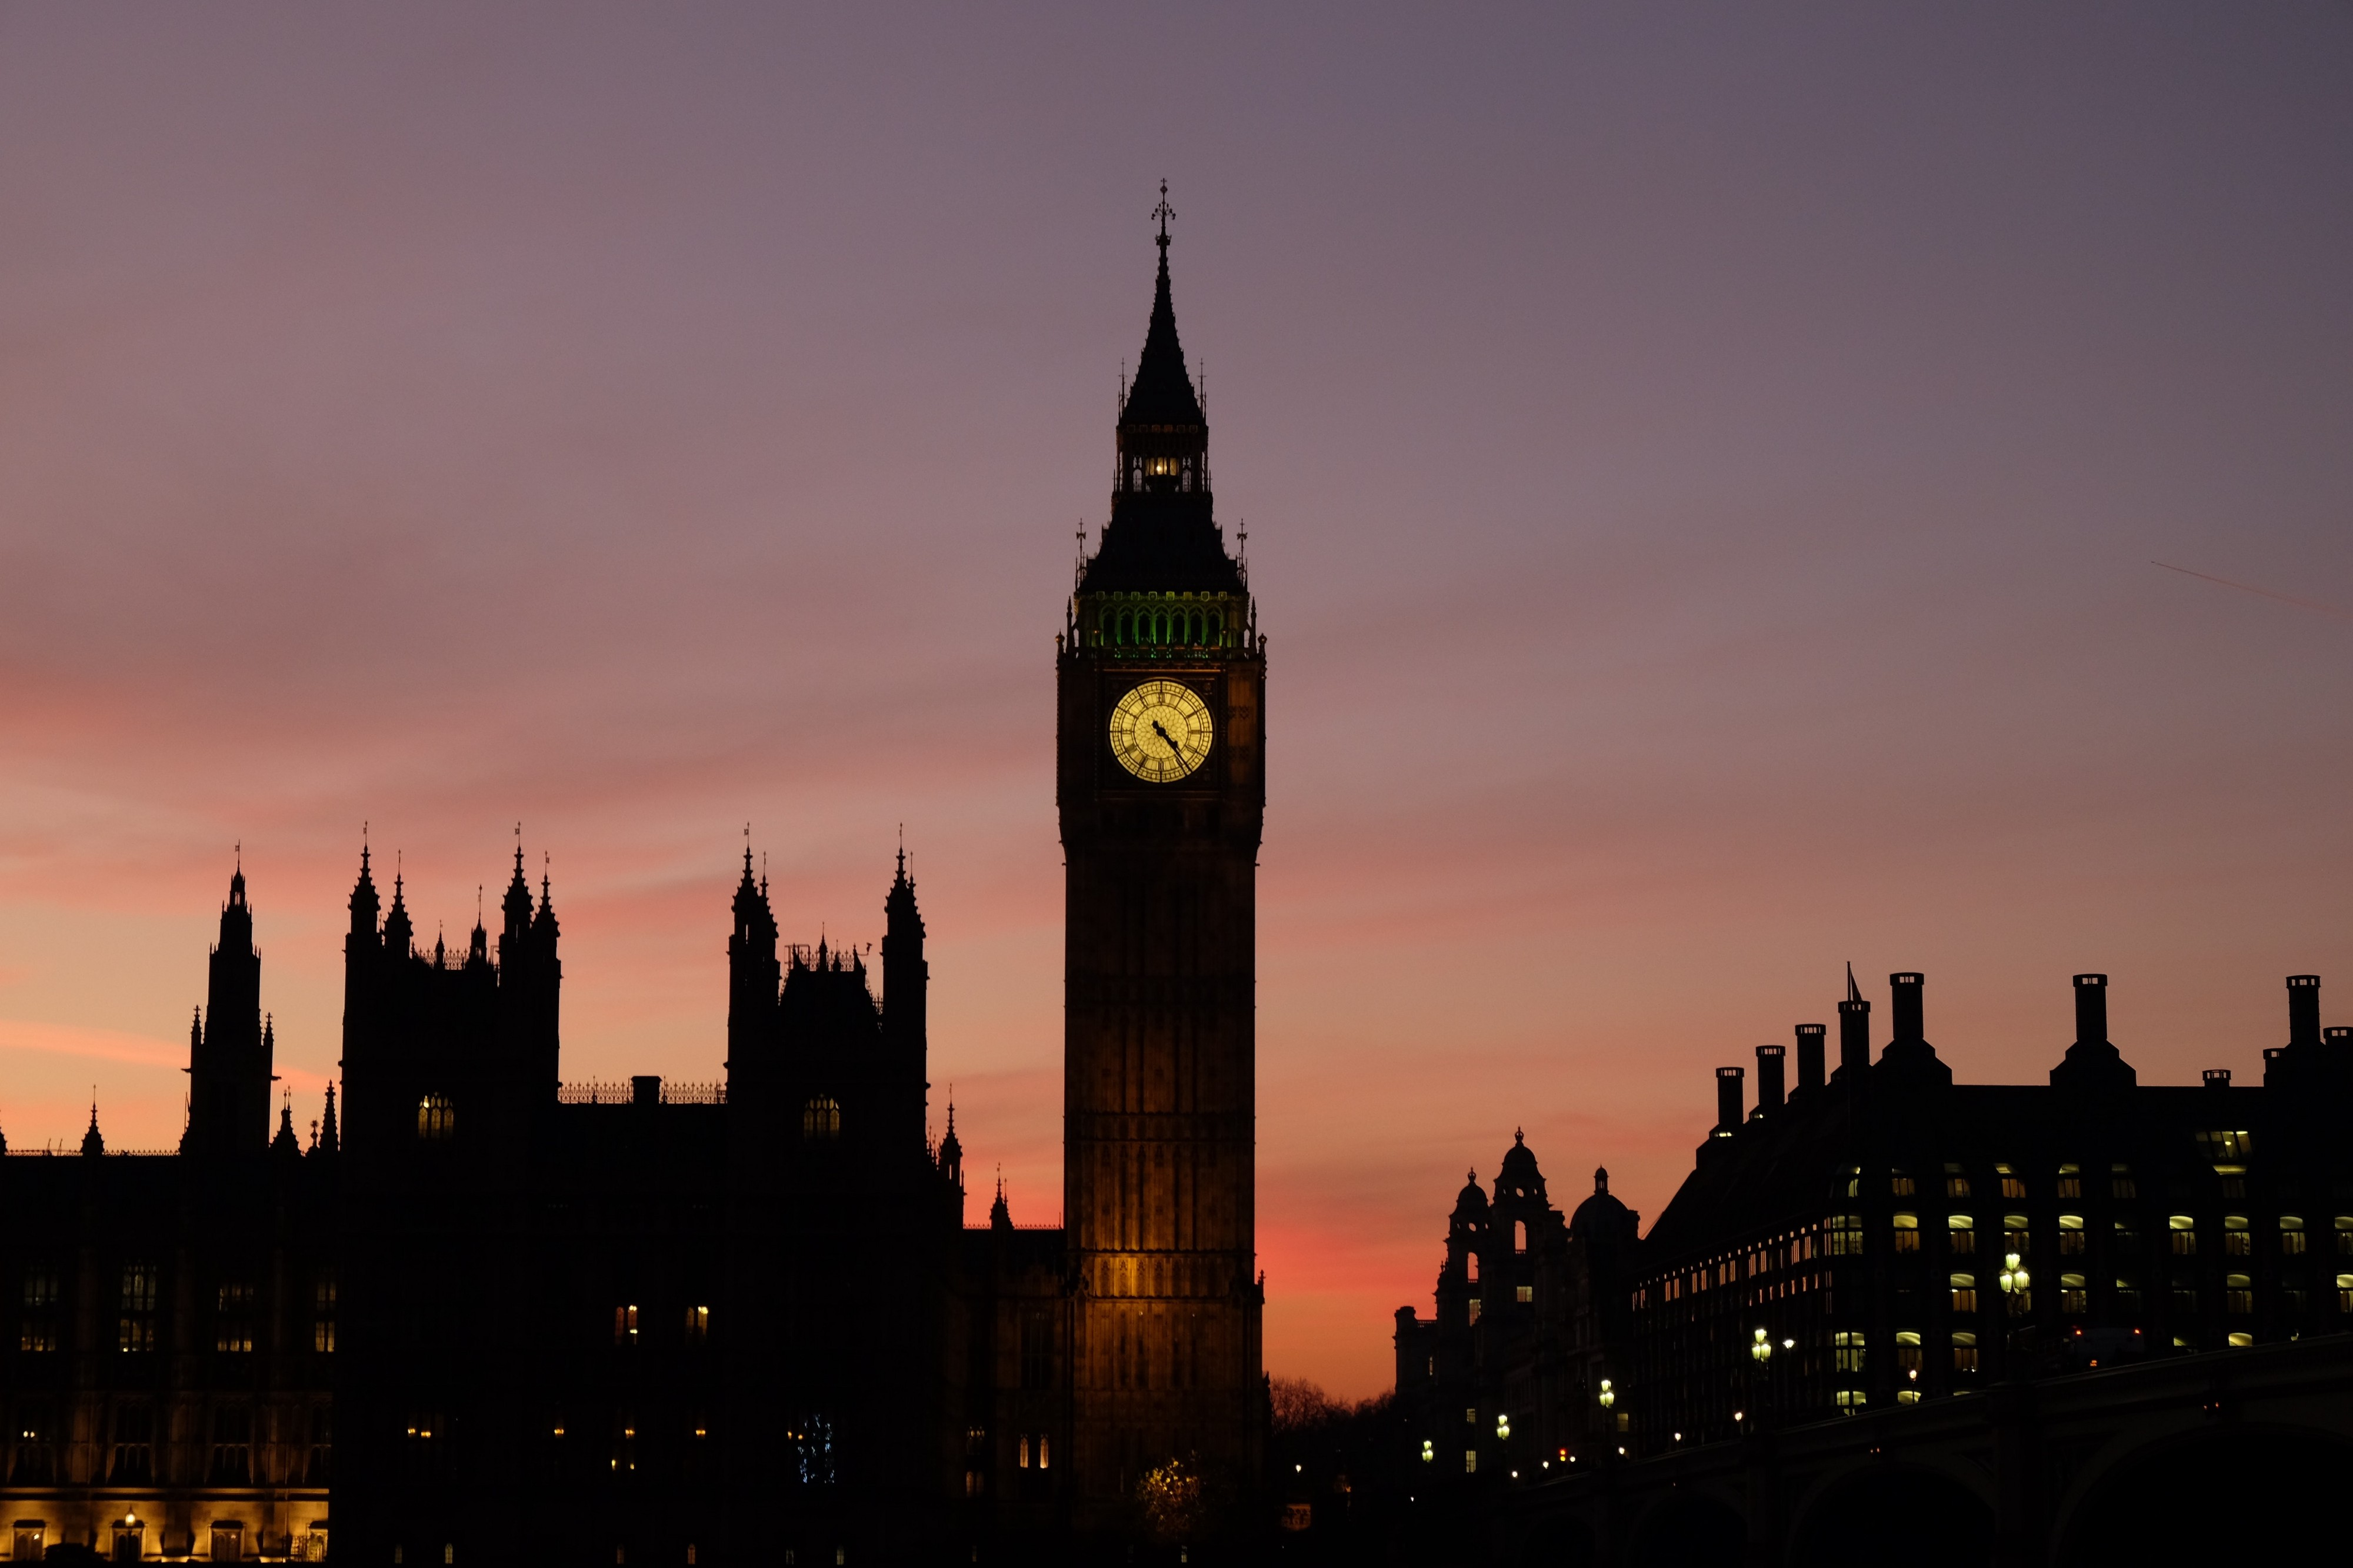 A shot of the Elizabeth Tower, known as Big Ben, and the Houses of Parliament, at dusk.